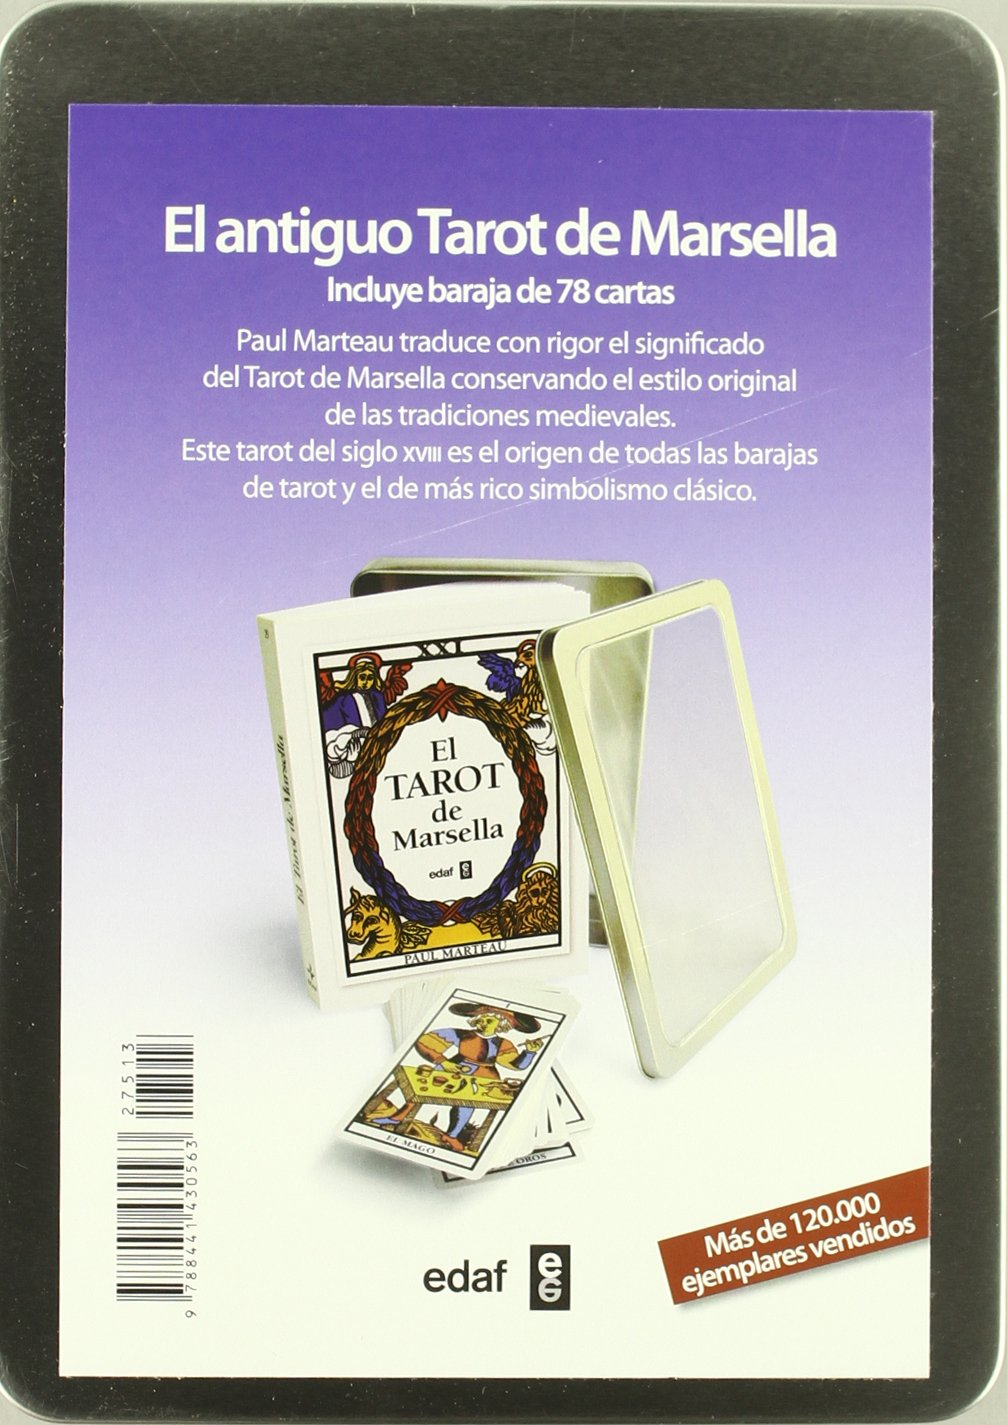 El tarot de Marsella: Agapea: 9788441430563: Amazon.com: Books